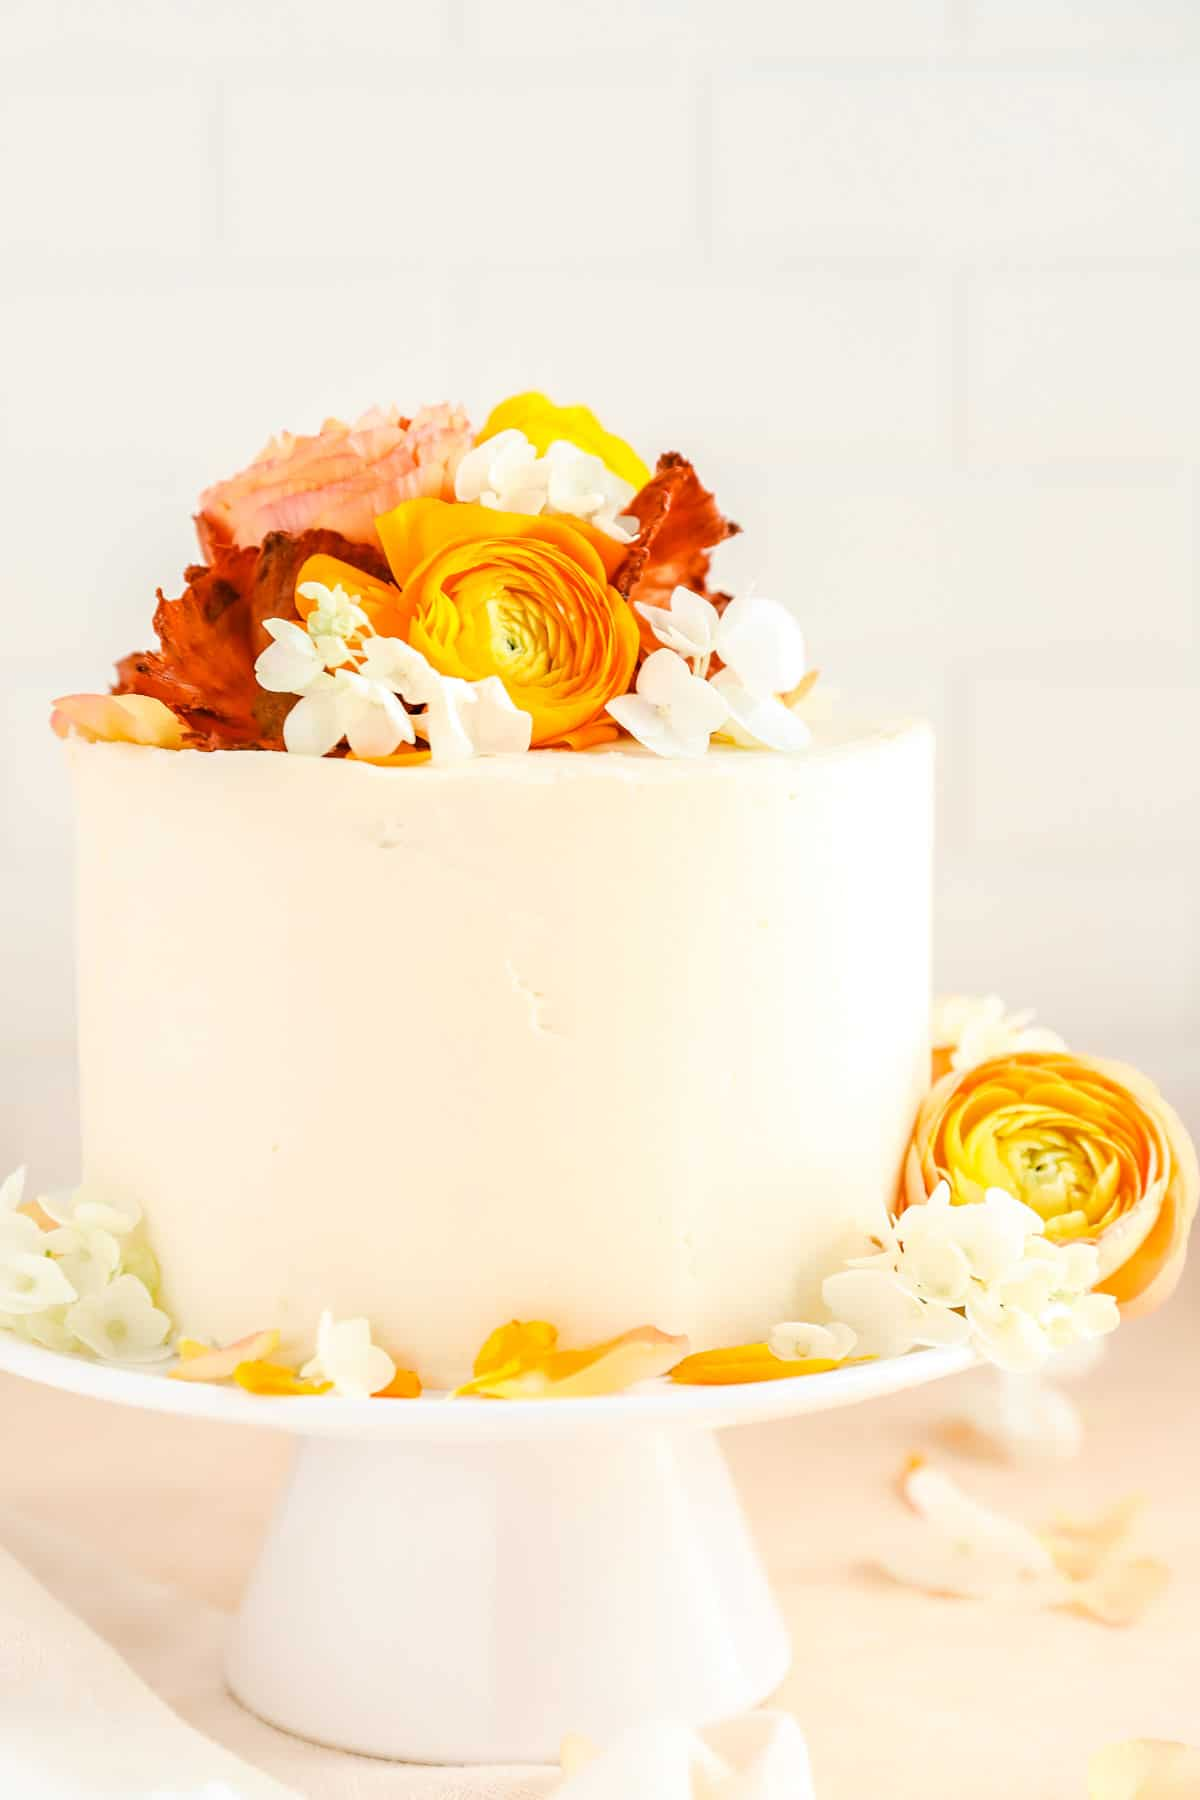 a cake covered in smooth white frosting with hydrangea and ranunculus flowers on top.